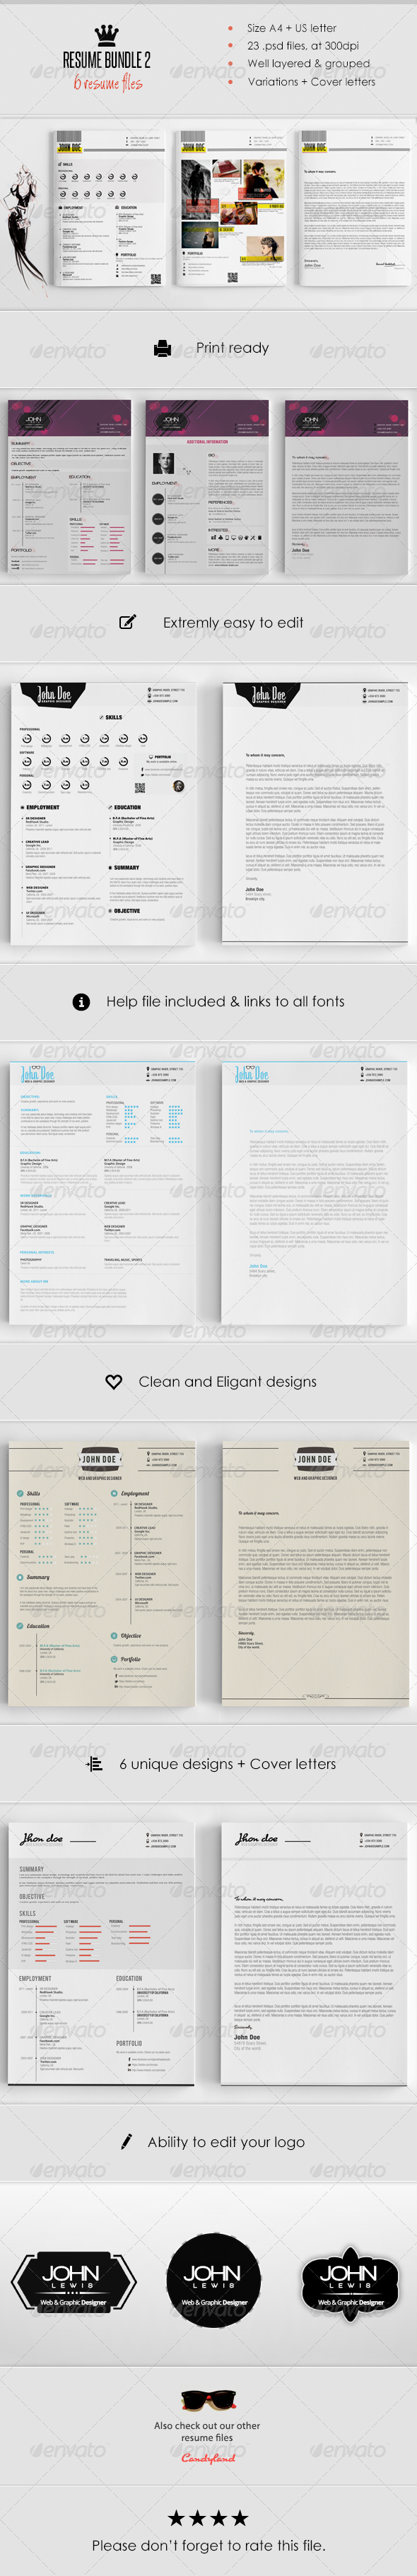 GraphicRiver Resume Bundle 6 in 1 6547693